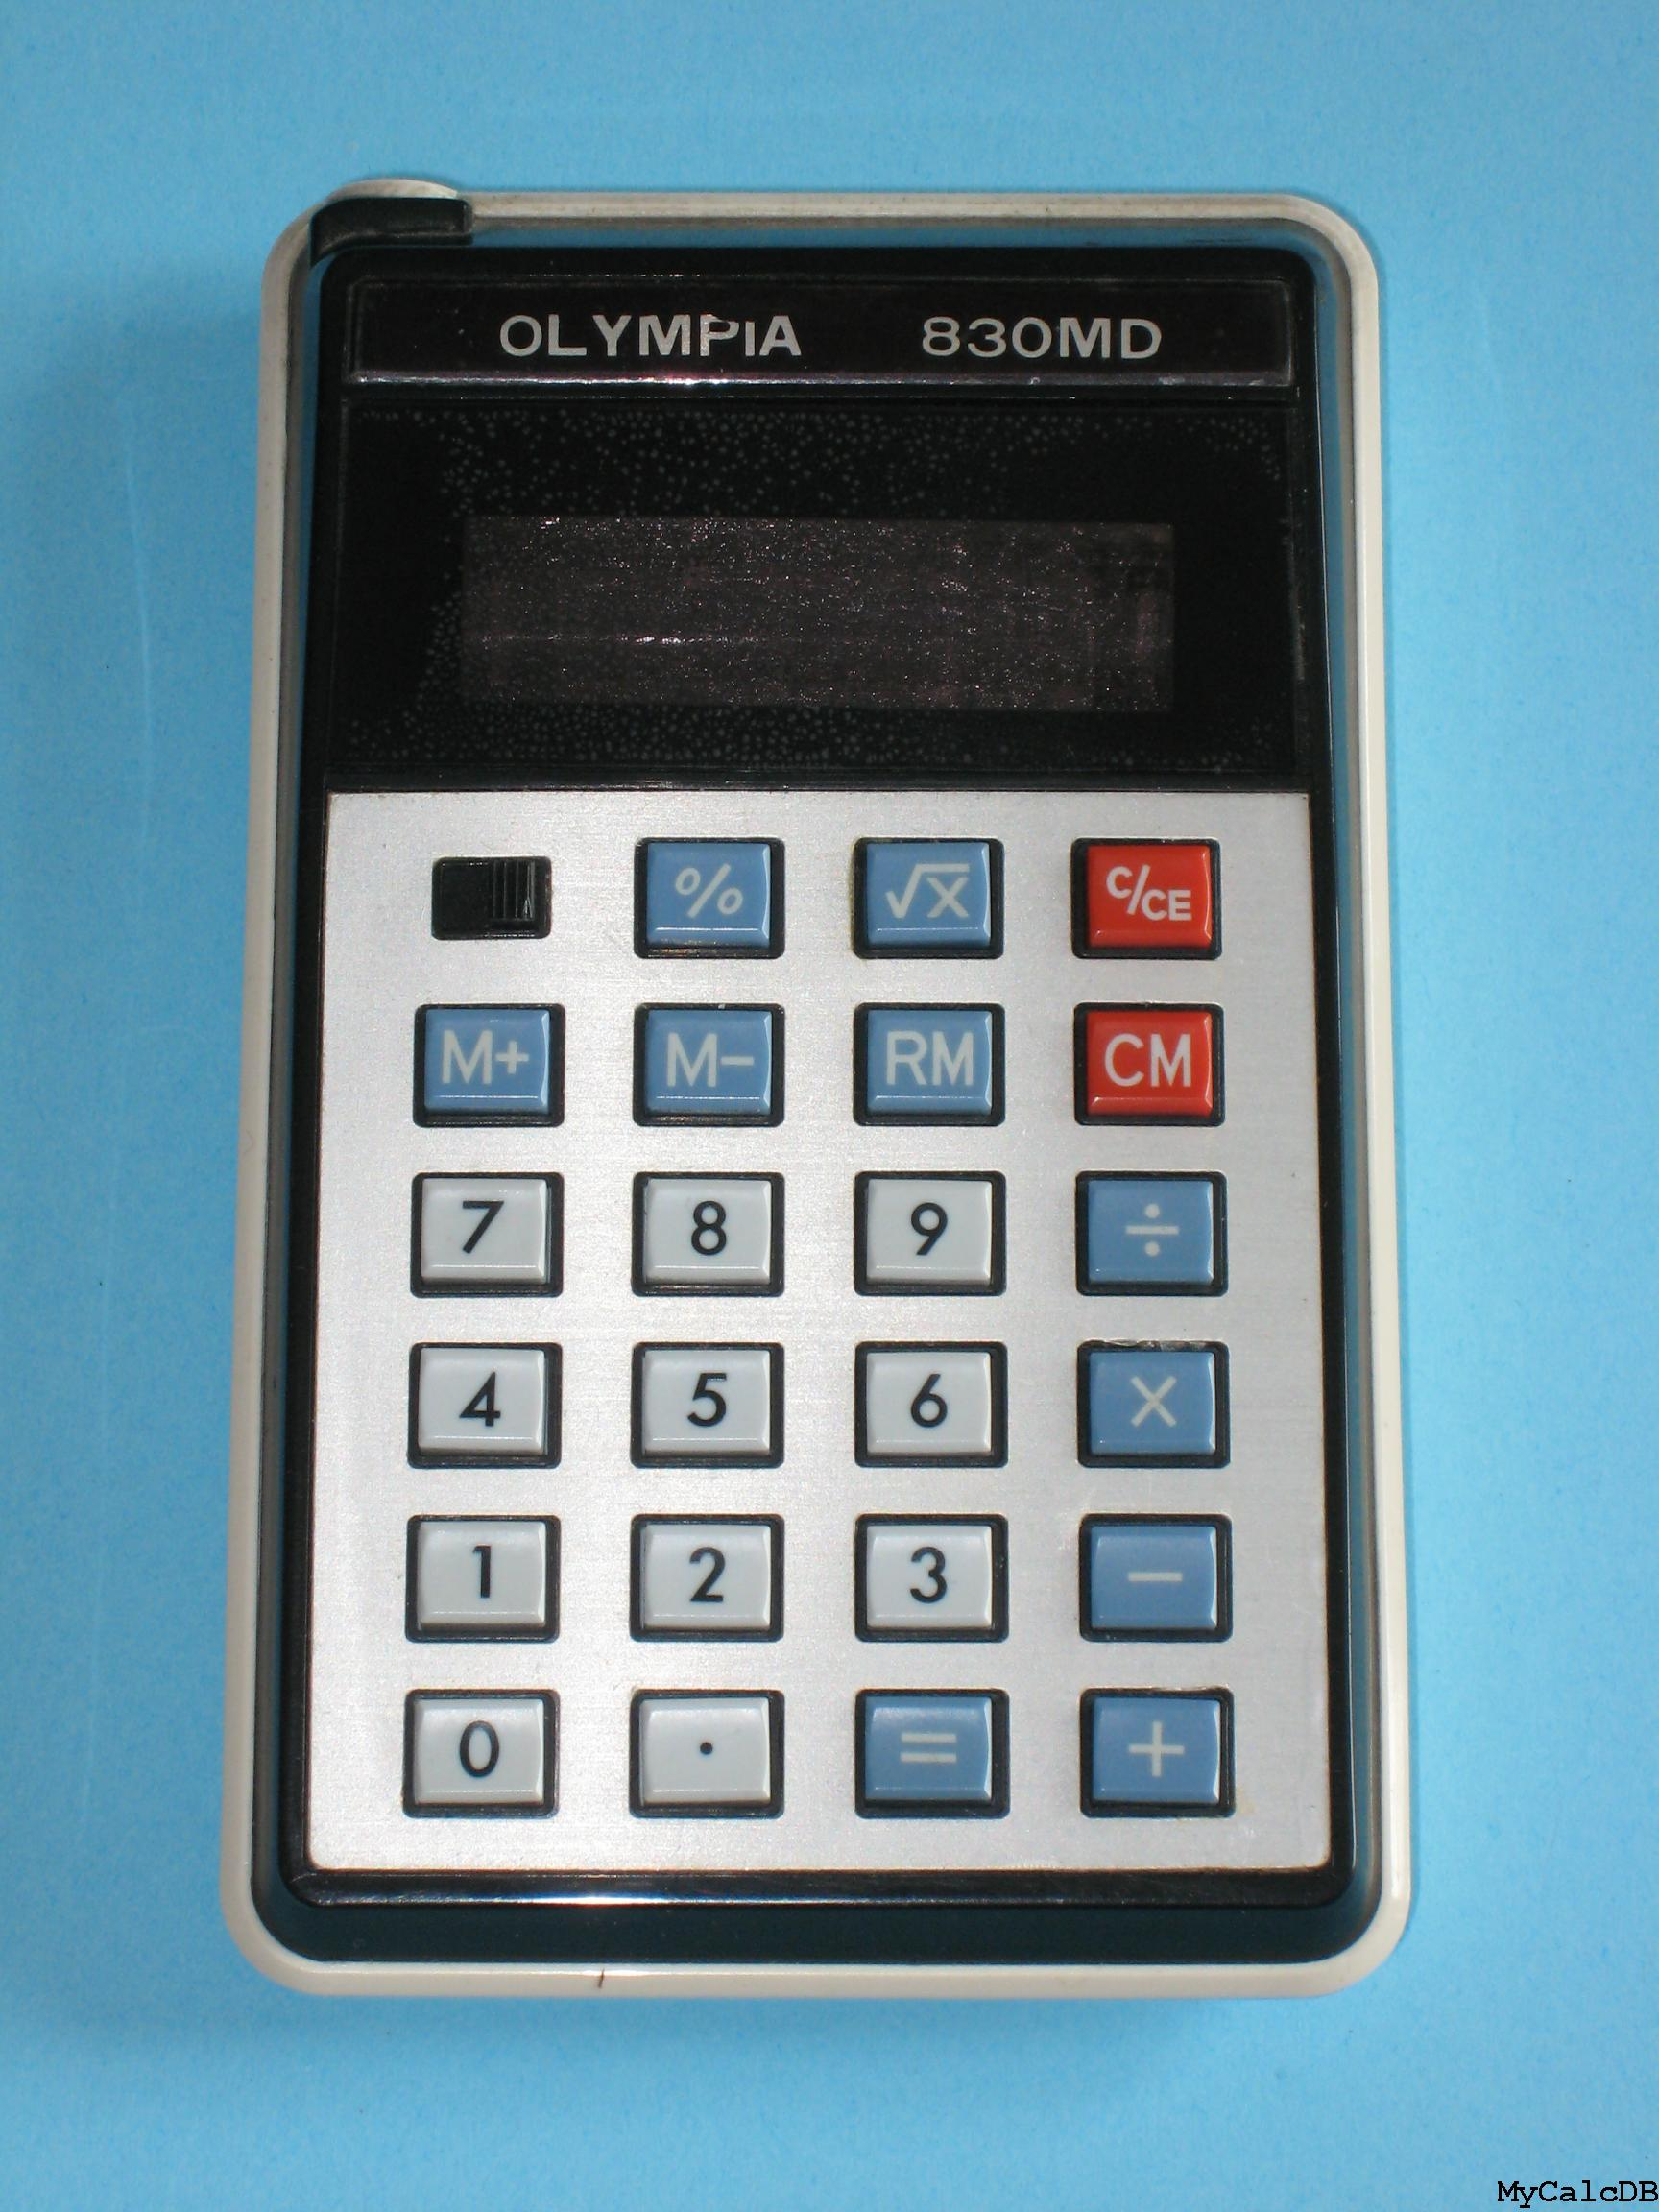 Olympia 830MD